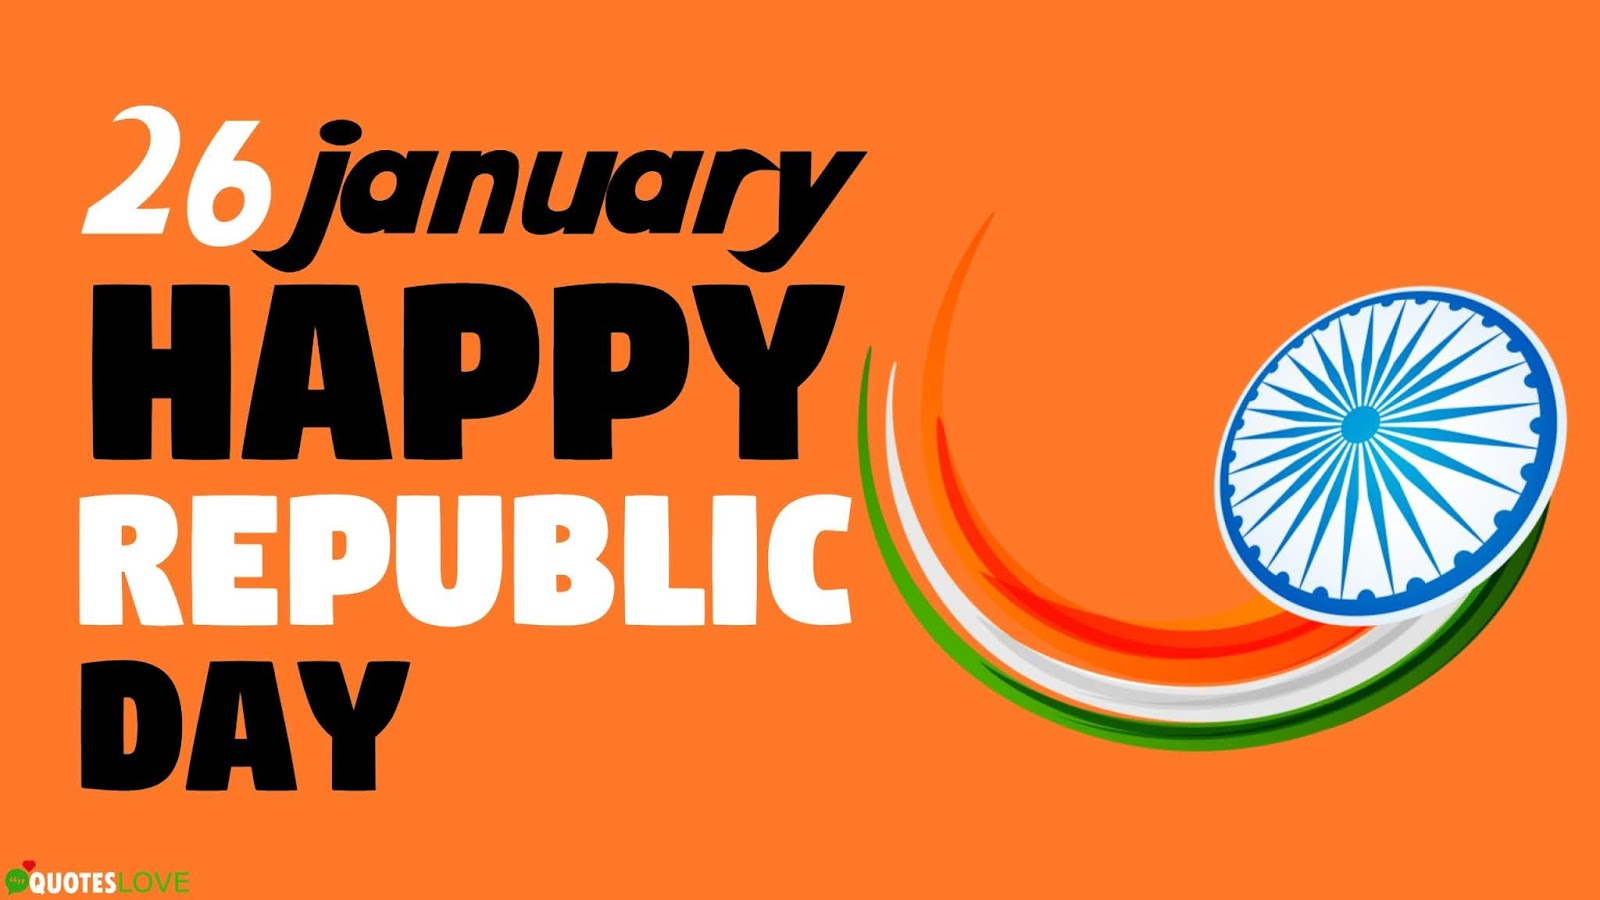 171+ (Best) 26 January: Happy Republic Day Quotes, Wishes, Slogans, Messages, SMS, Images For Whatsapp & Facebook